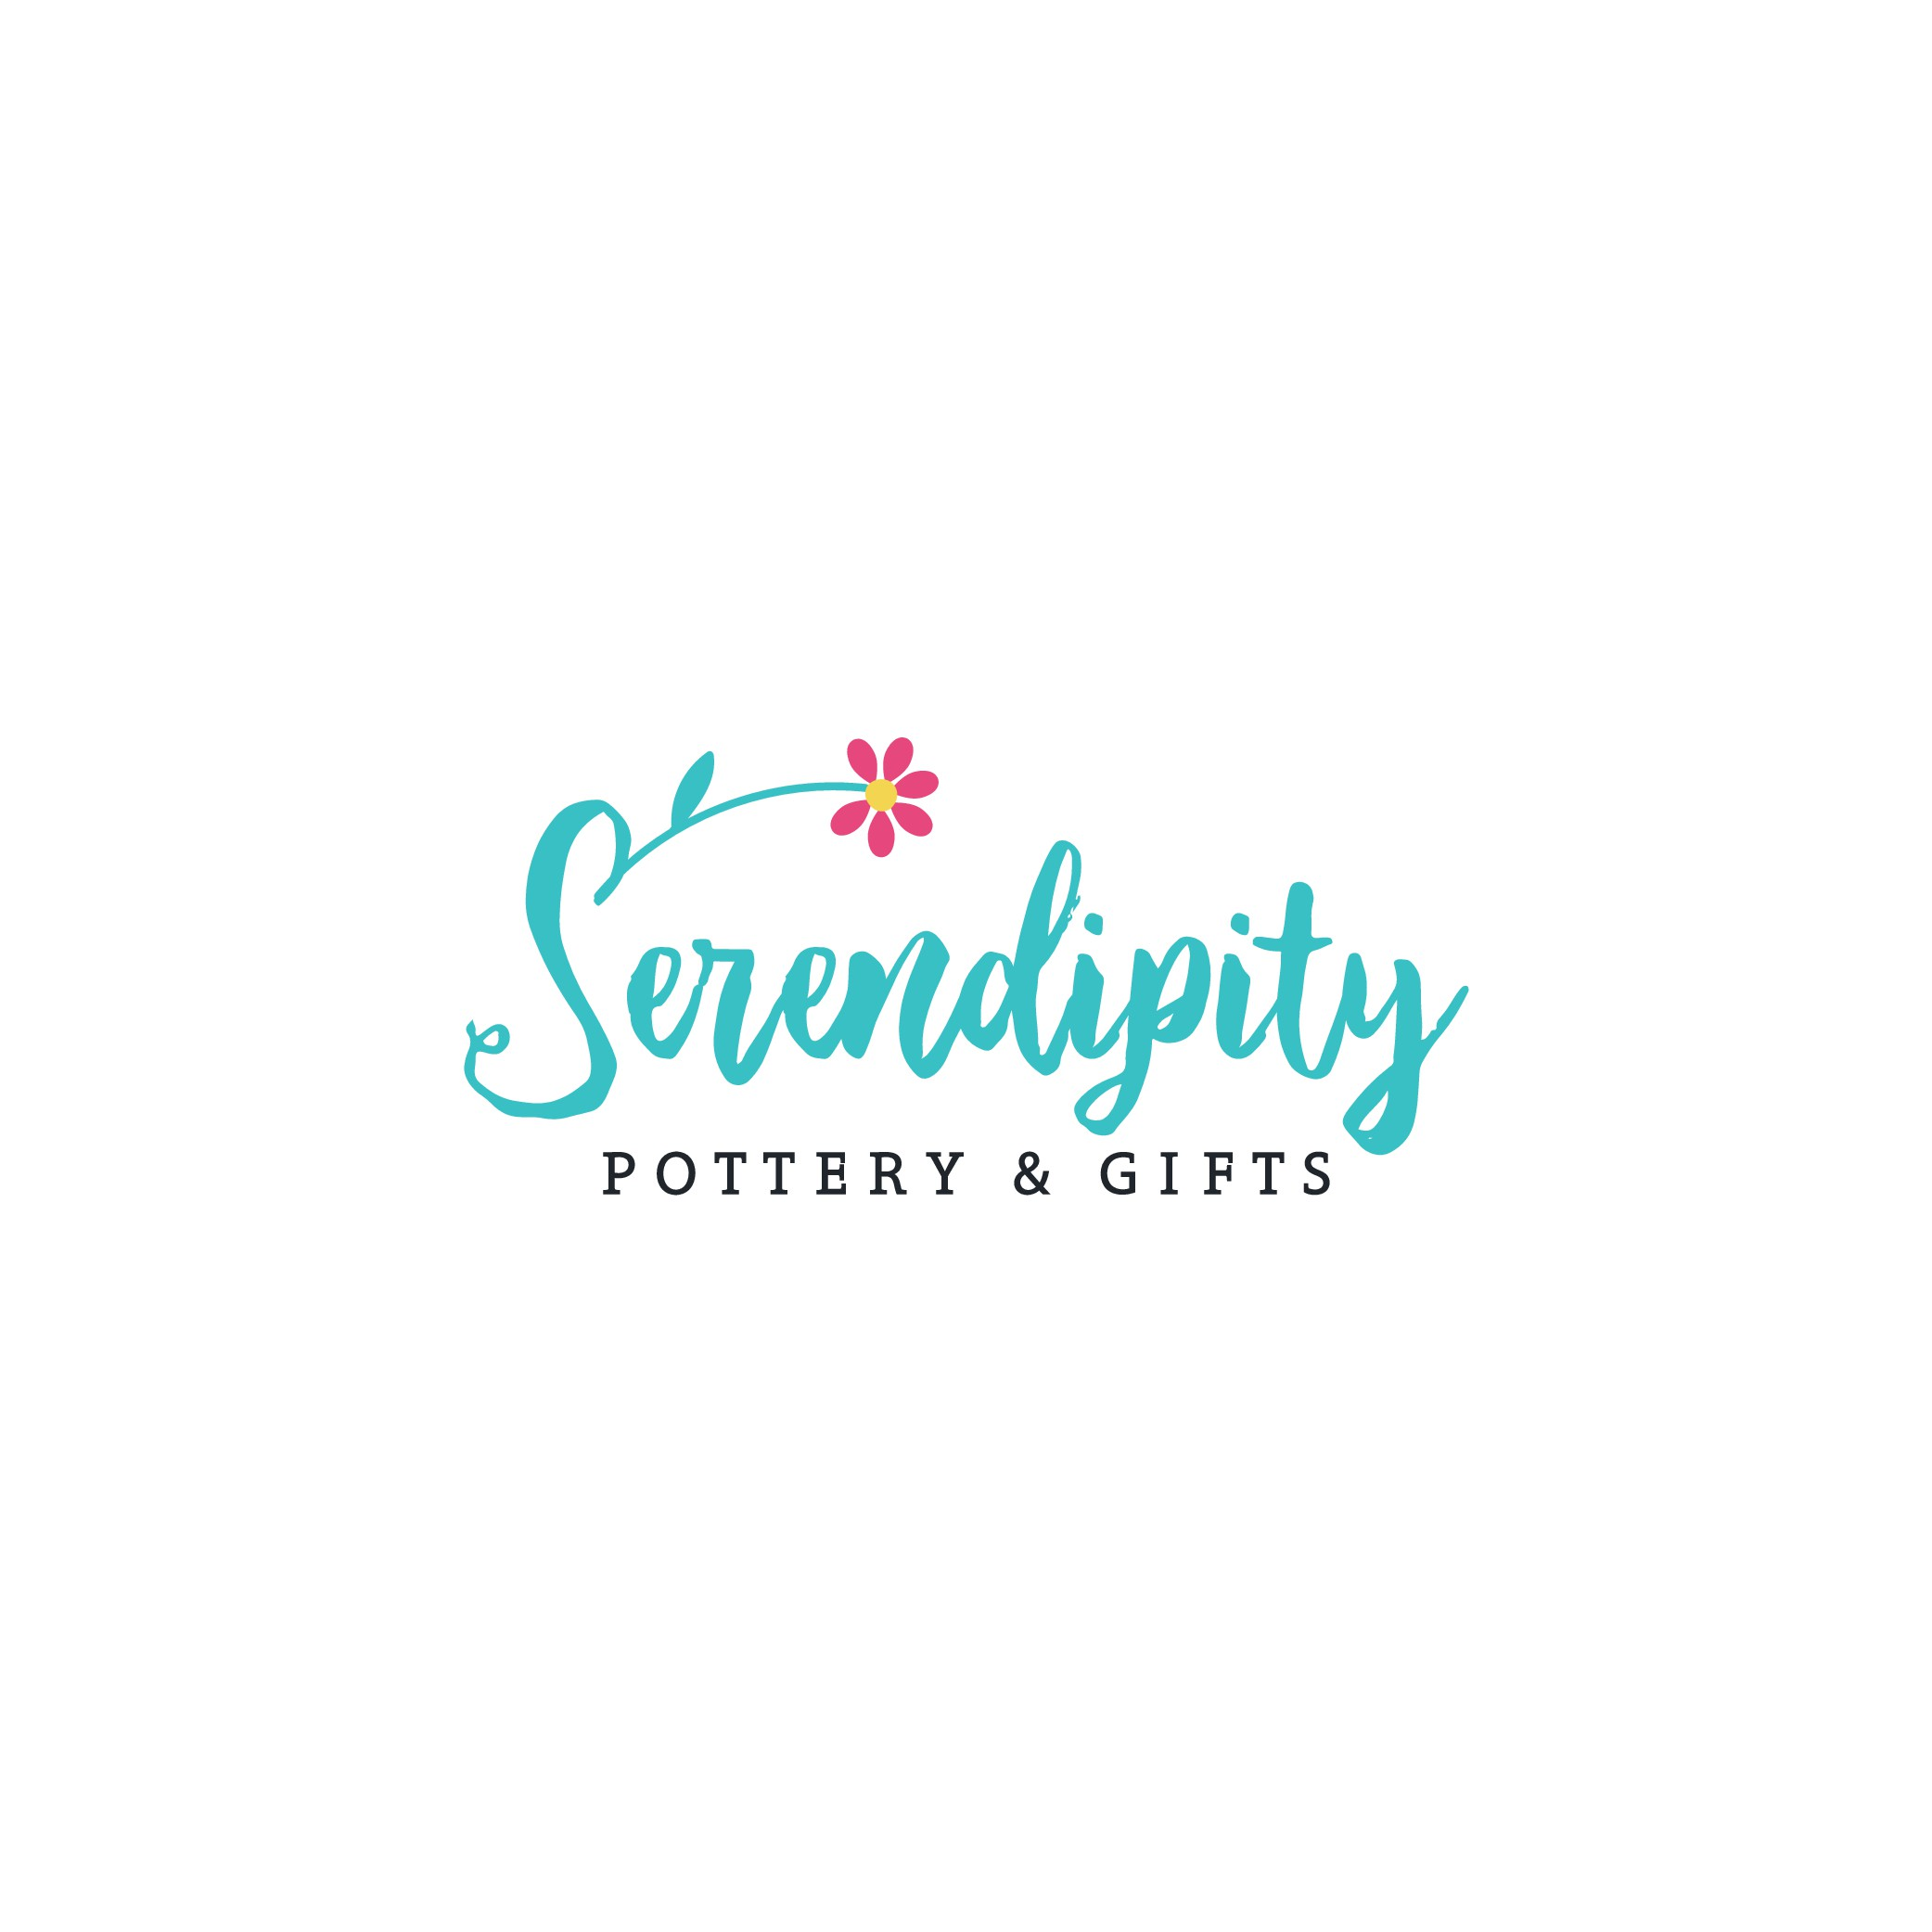 Help make my dreams come true by designing the perfect logo for my new boutique